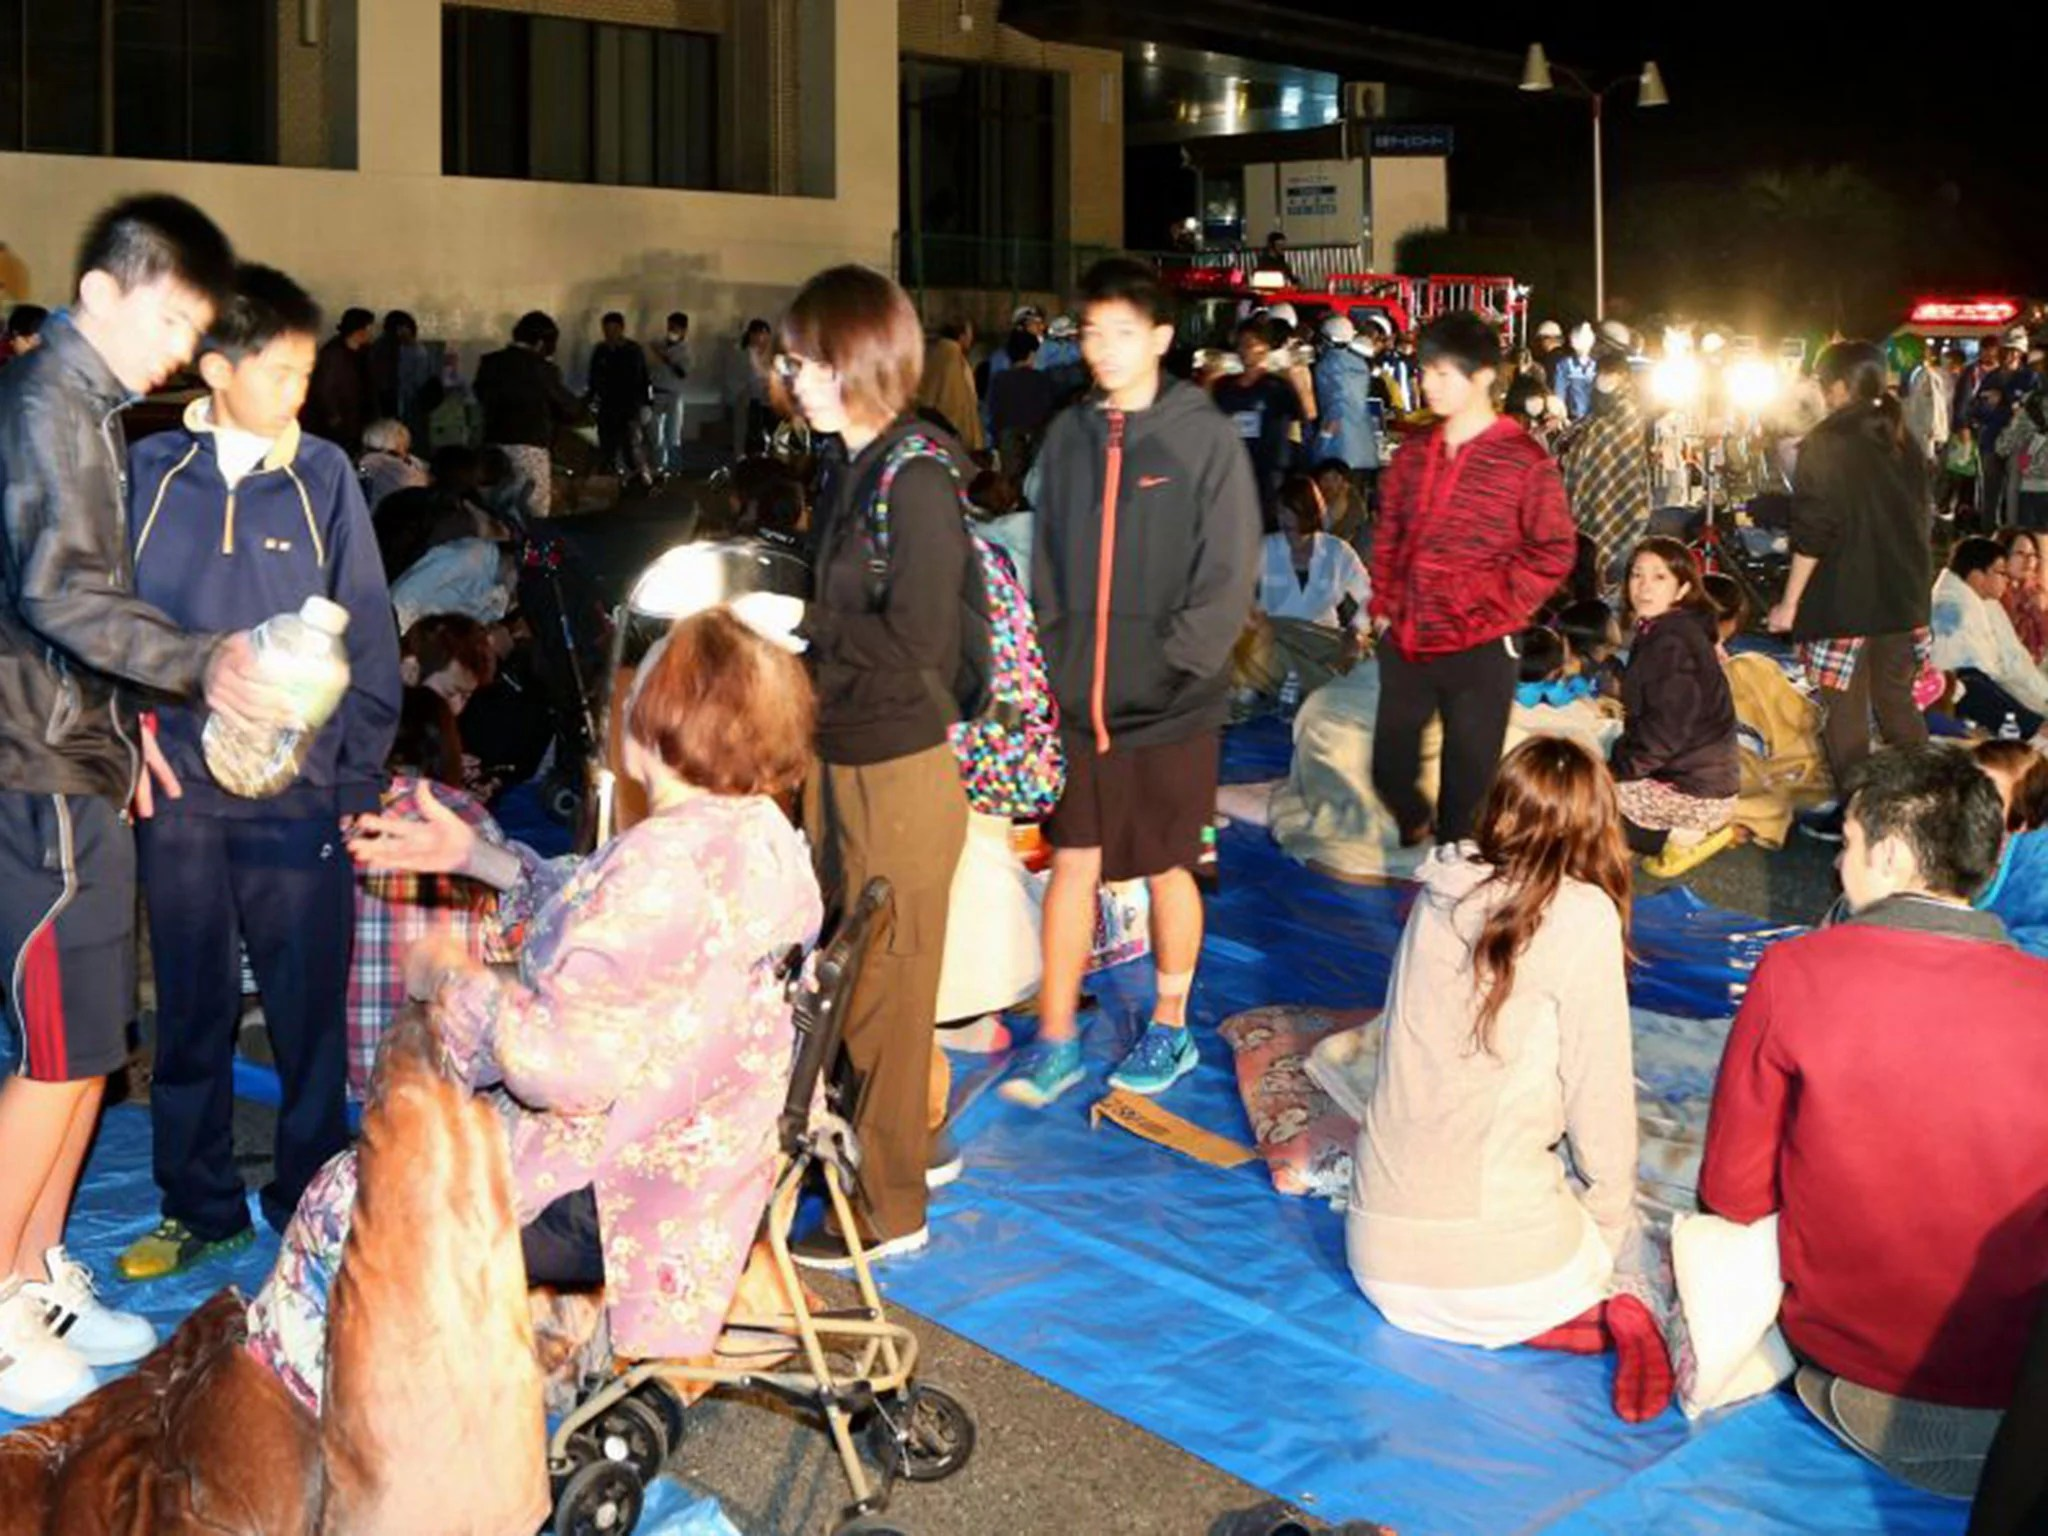 Japan Earthquake Of 6 4 Magnitude Hits South Of Country Injuring Hundreds